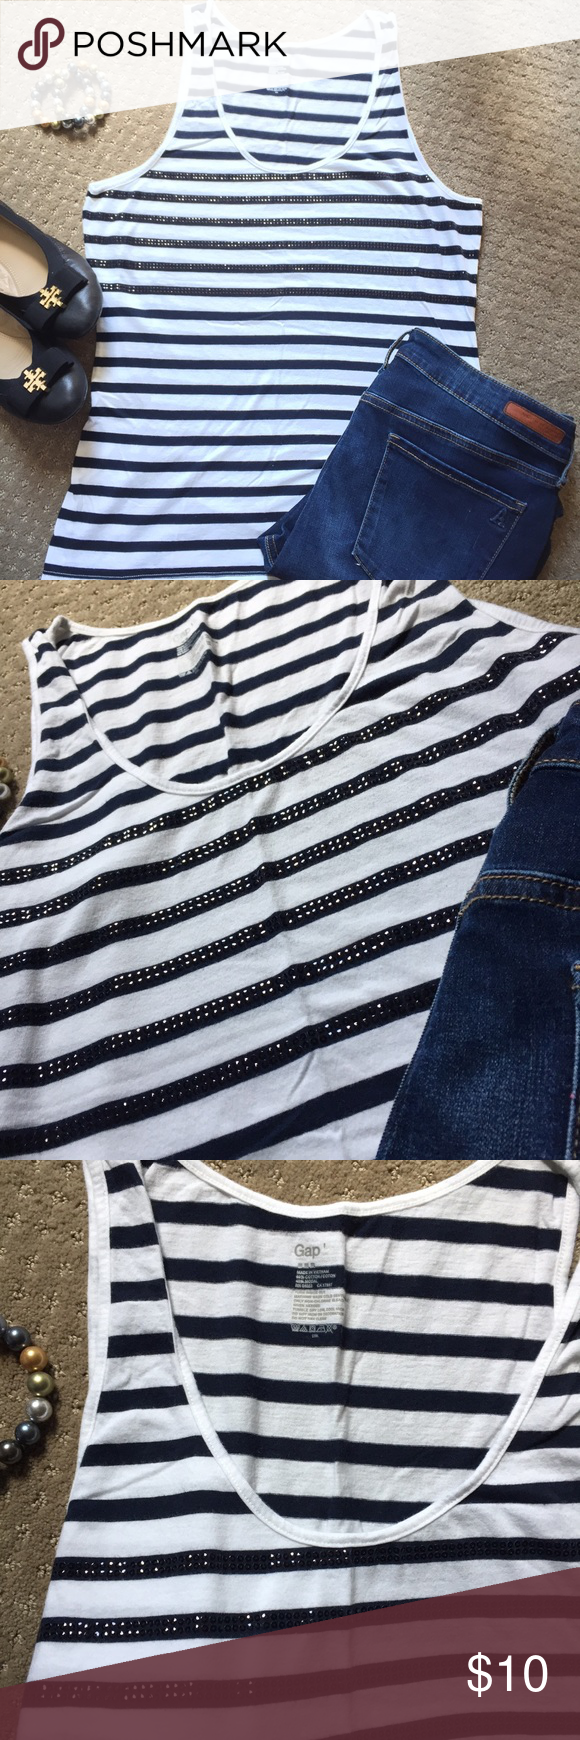 53f63f2eba1a8 Gap tank Navy blue and white Gap cotton striped tank. Great navy  embellishments on stripes over bust area. Size Large. Like new condition GAP  Tops Tank Tops